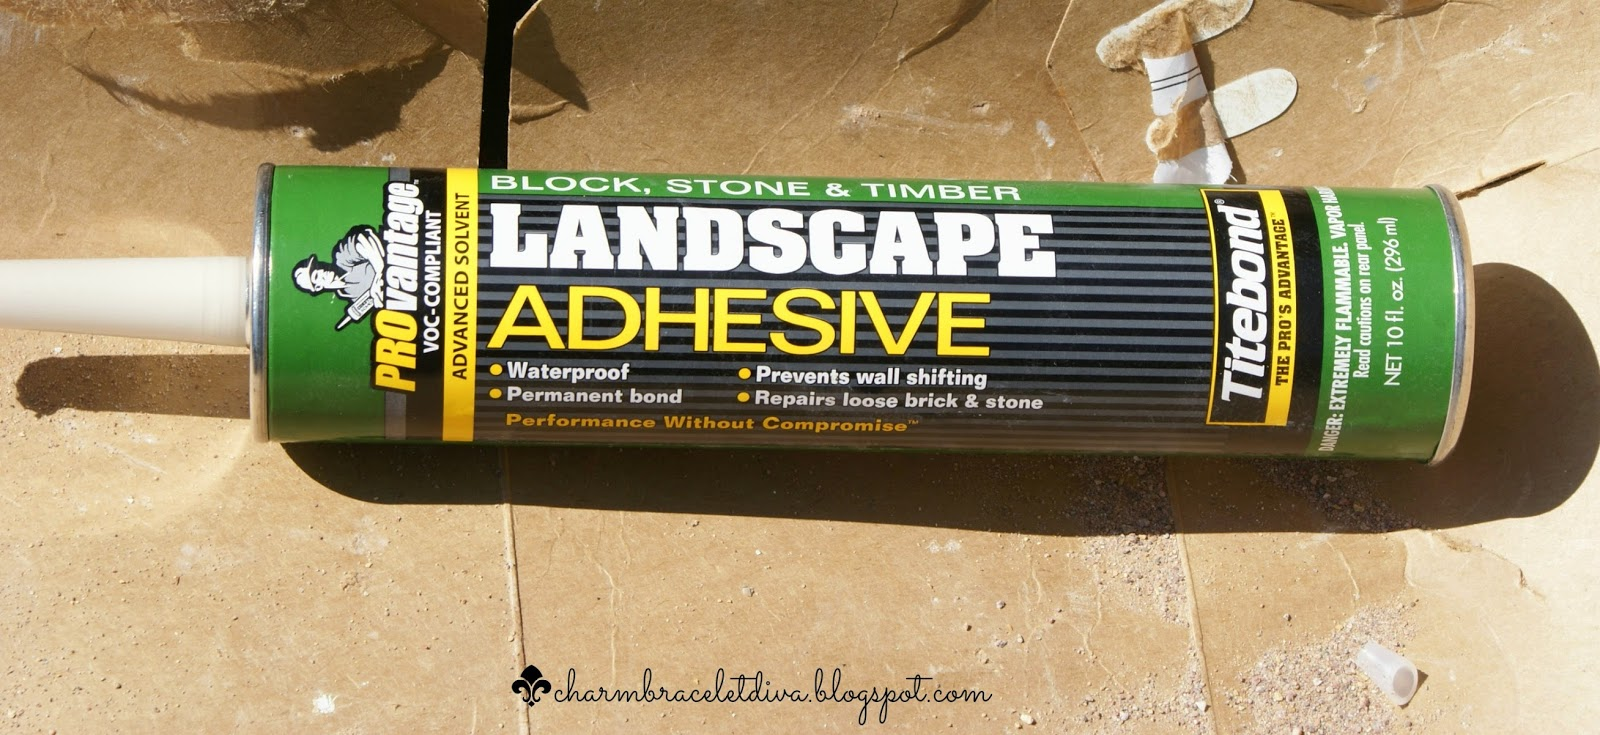 Landscaping Block Glue : Our hopeful home how to build your own fire pit for less